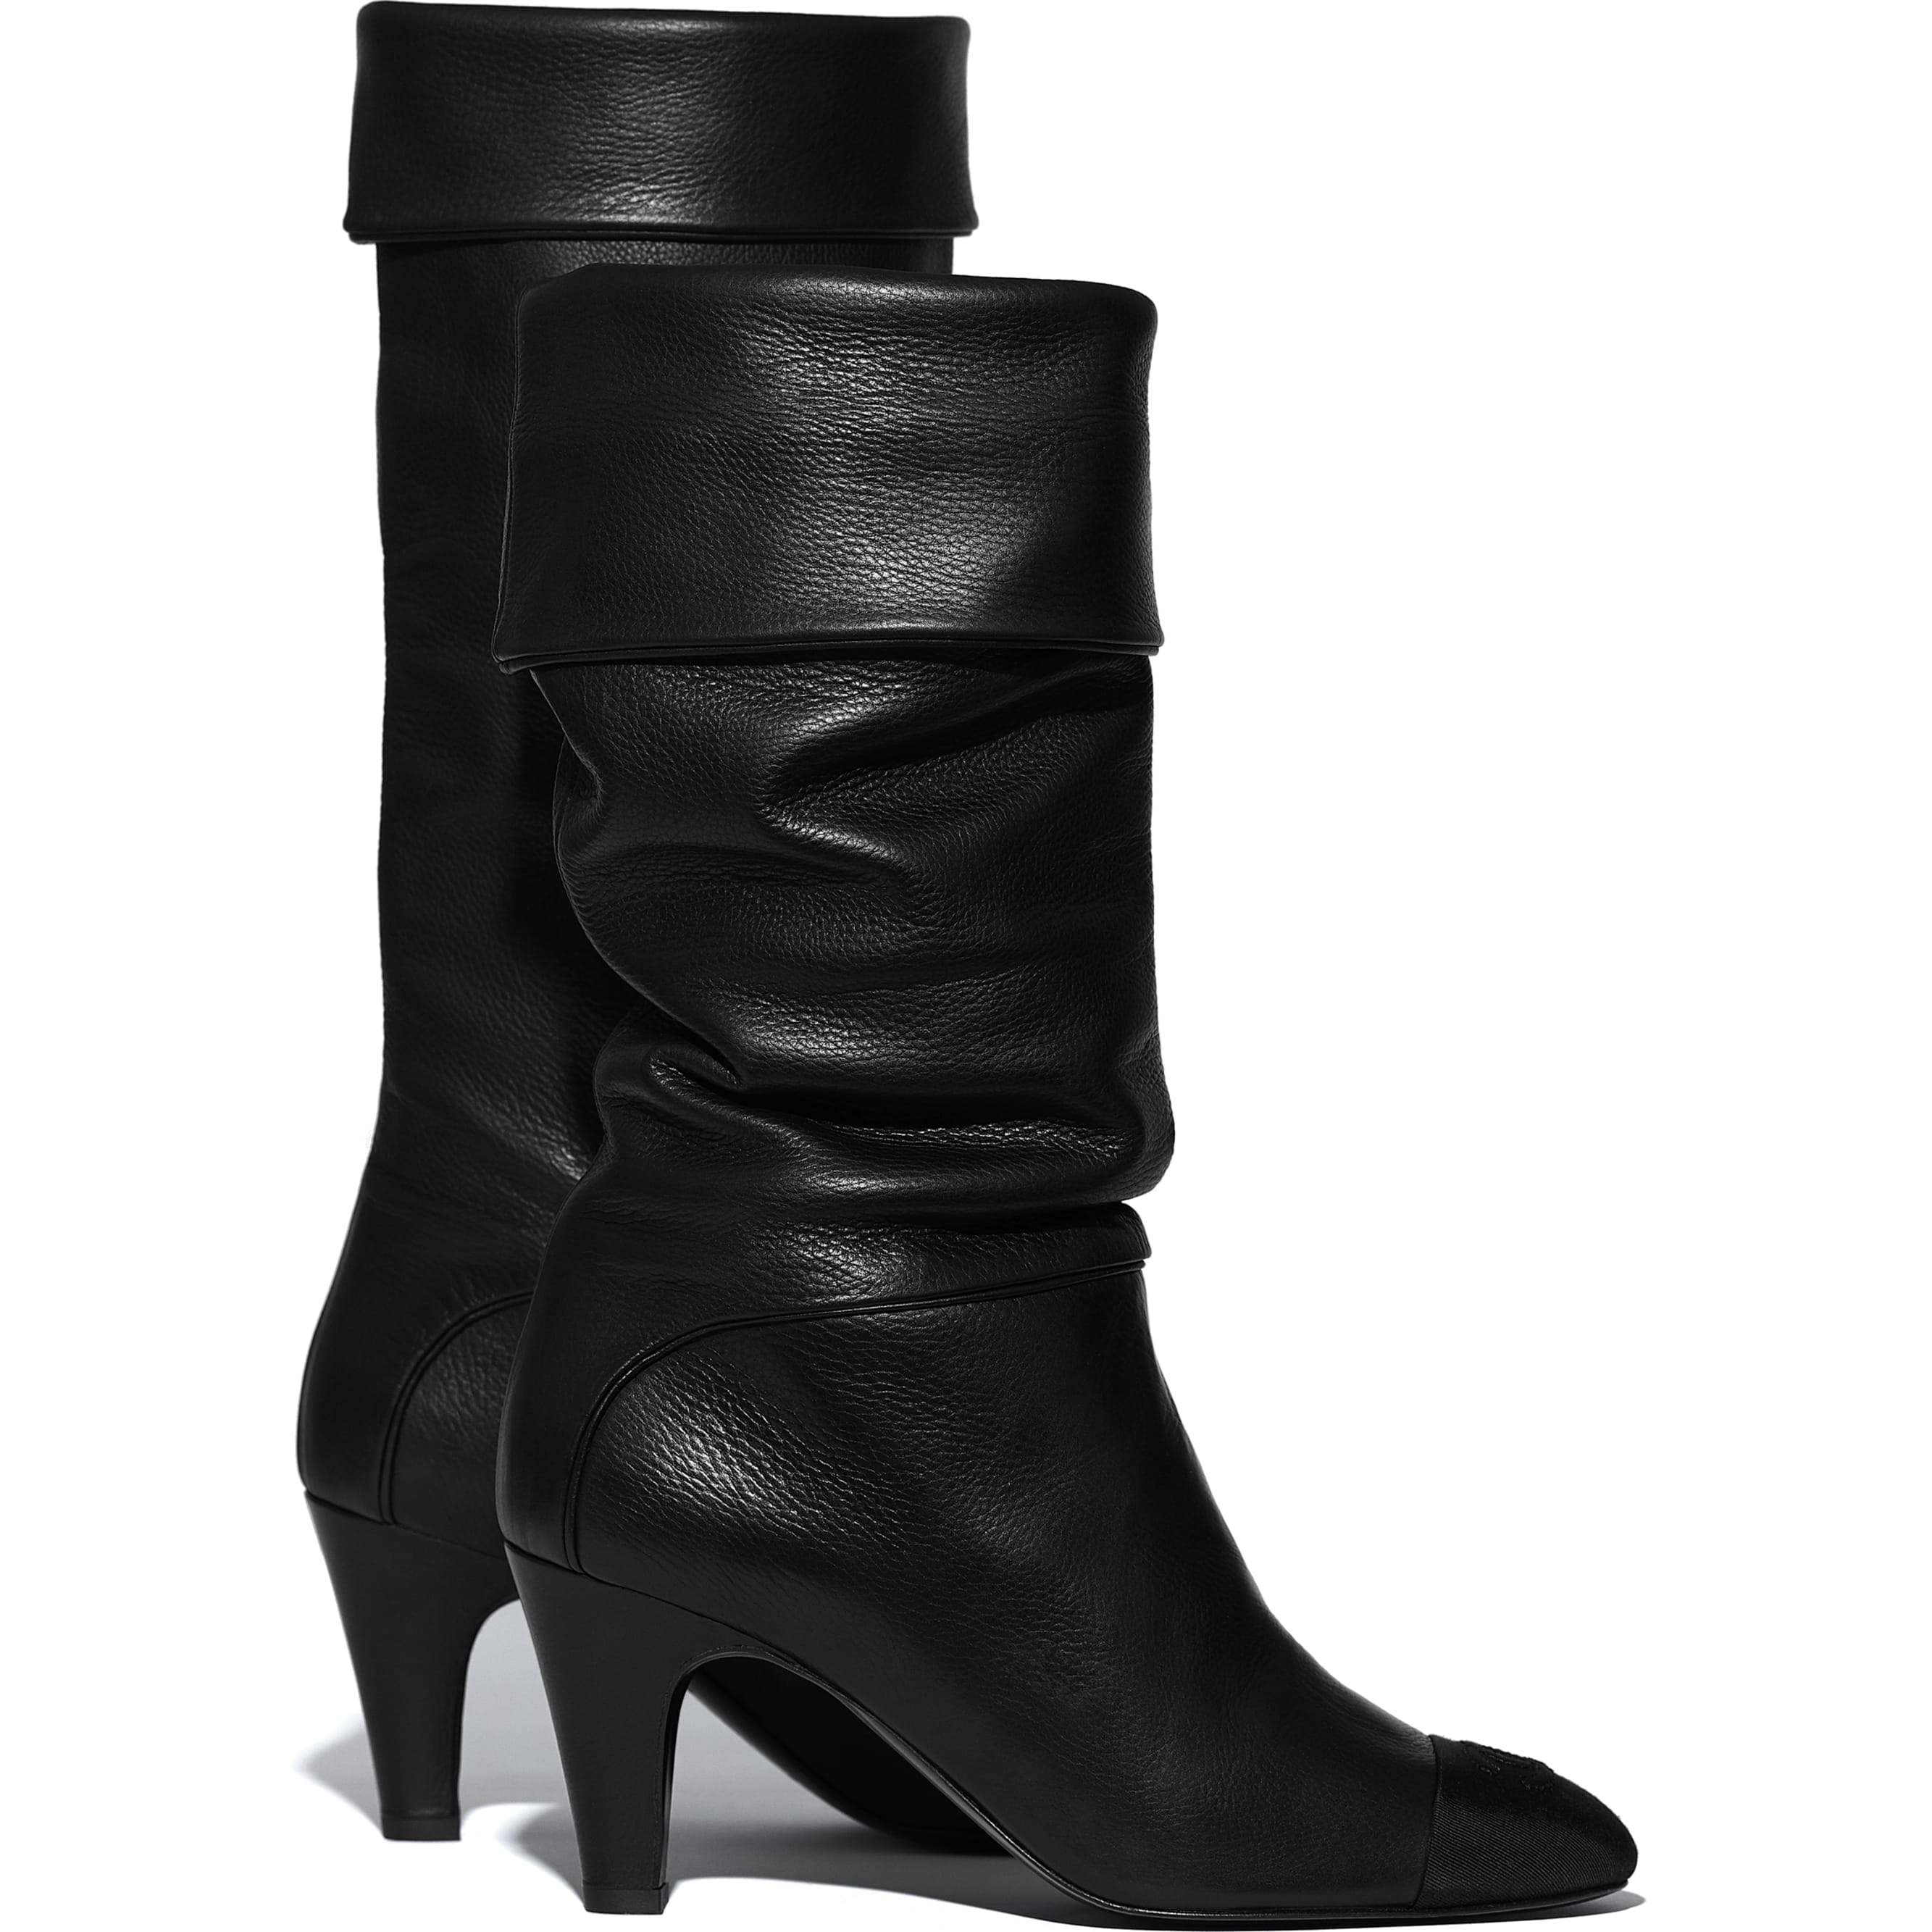 High Boots - Black - Calfskin & Grosgrain - CHANEL - Extra view - see standard sized version